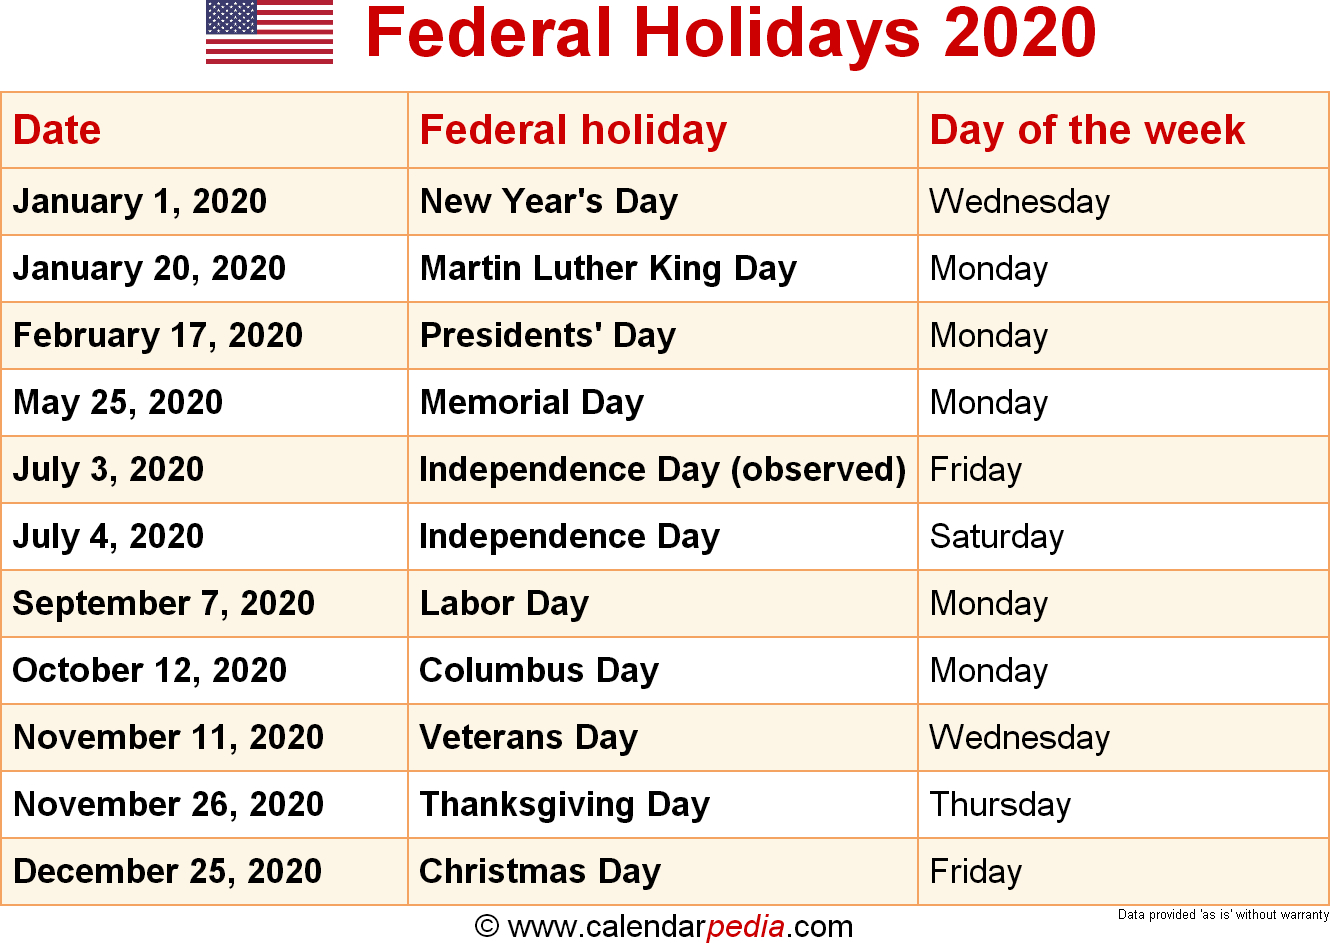 All Federal Holidays 2020 for Calendar With All The Special Days In 2020